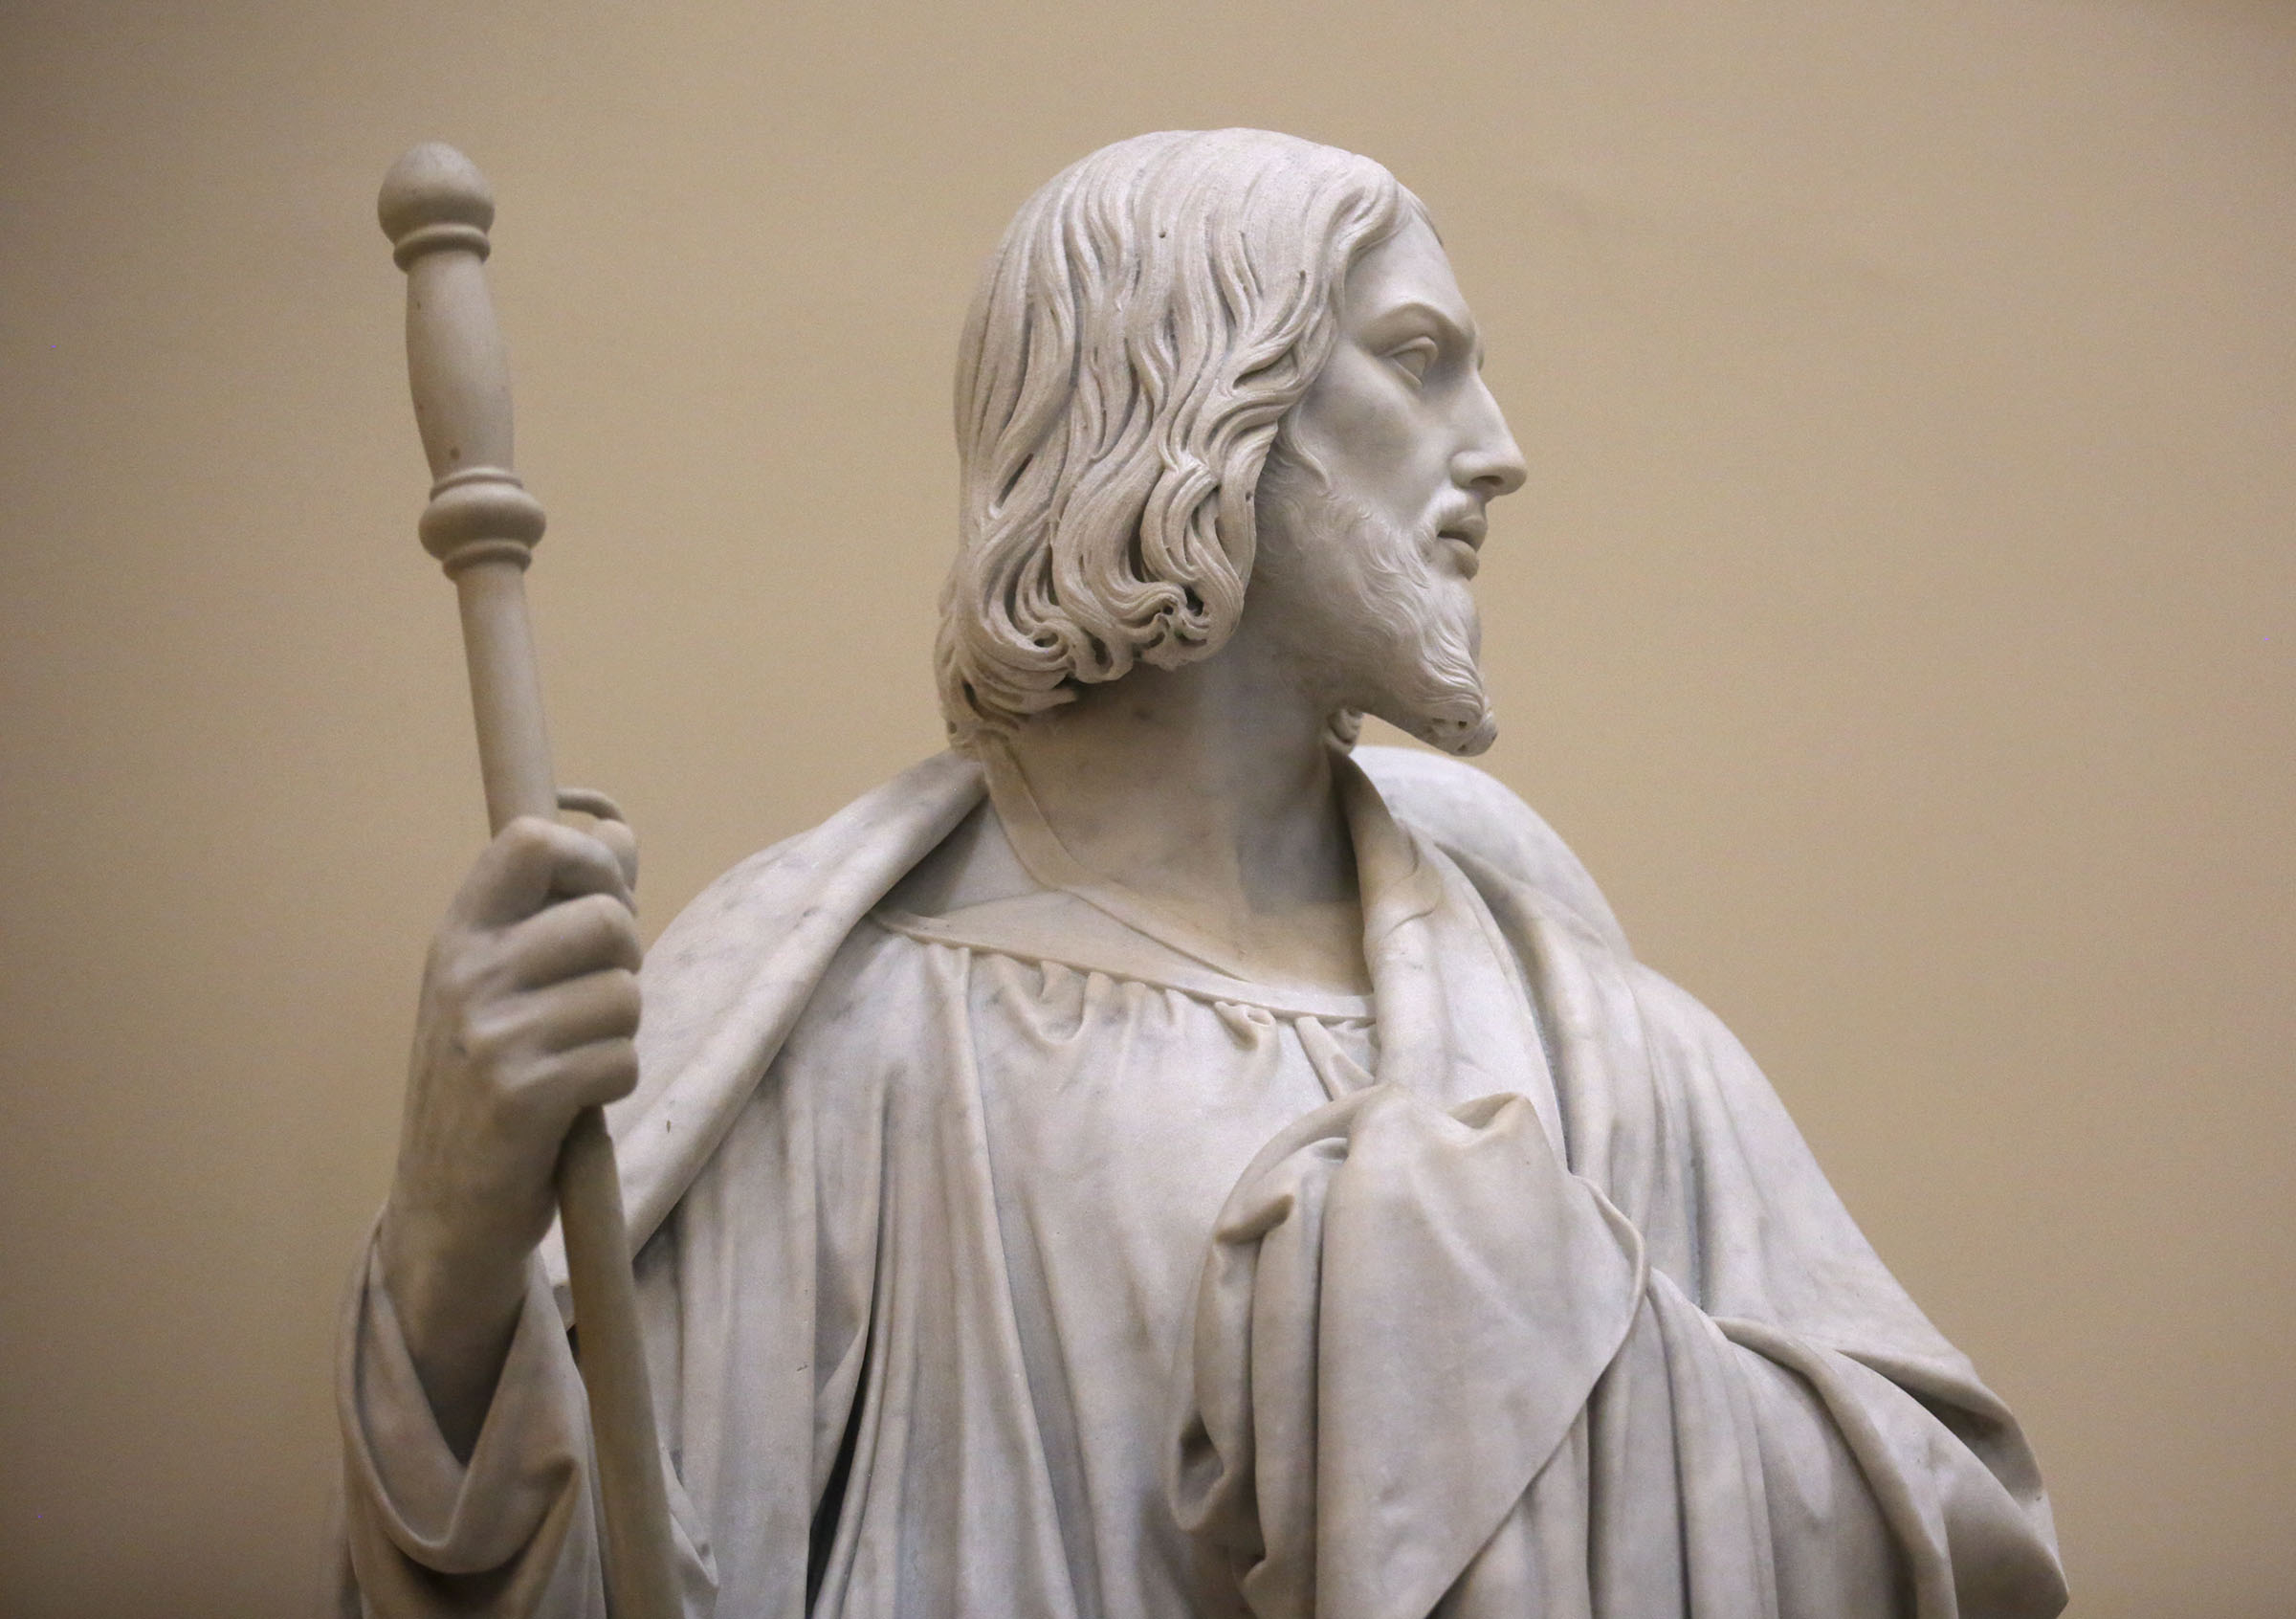 Bertel Thorvaldsen's statue of James the elder, one of the 12 apostles, holds a staff at the Church of Our Lady in Copenhagen, Denmark, on Tuesday, Nov. 13, 2018. The 12 apostles statues were carved out of Carrara marble between 1829 and 1848. Replicas of the statues are now on display in the Rome Temple Visitors' Center in Italy.